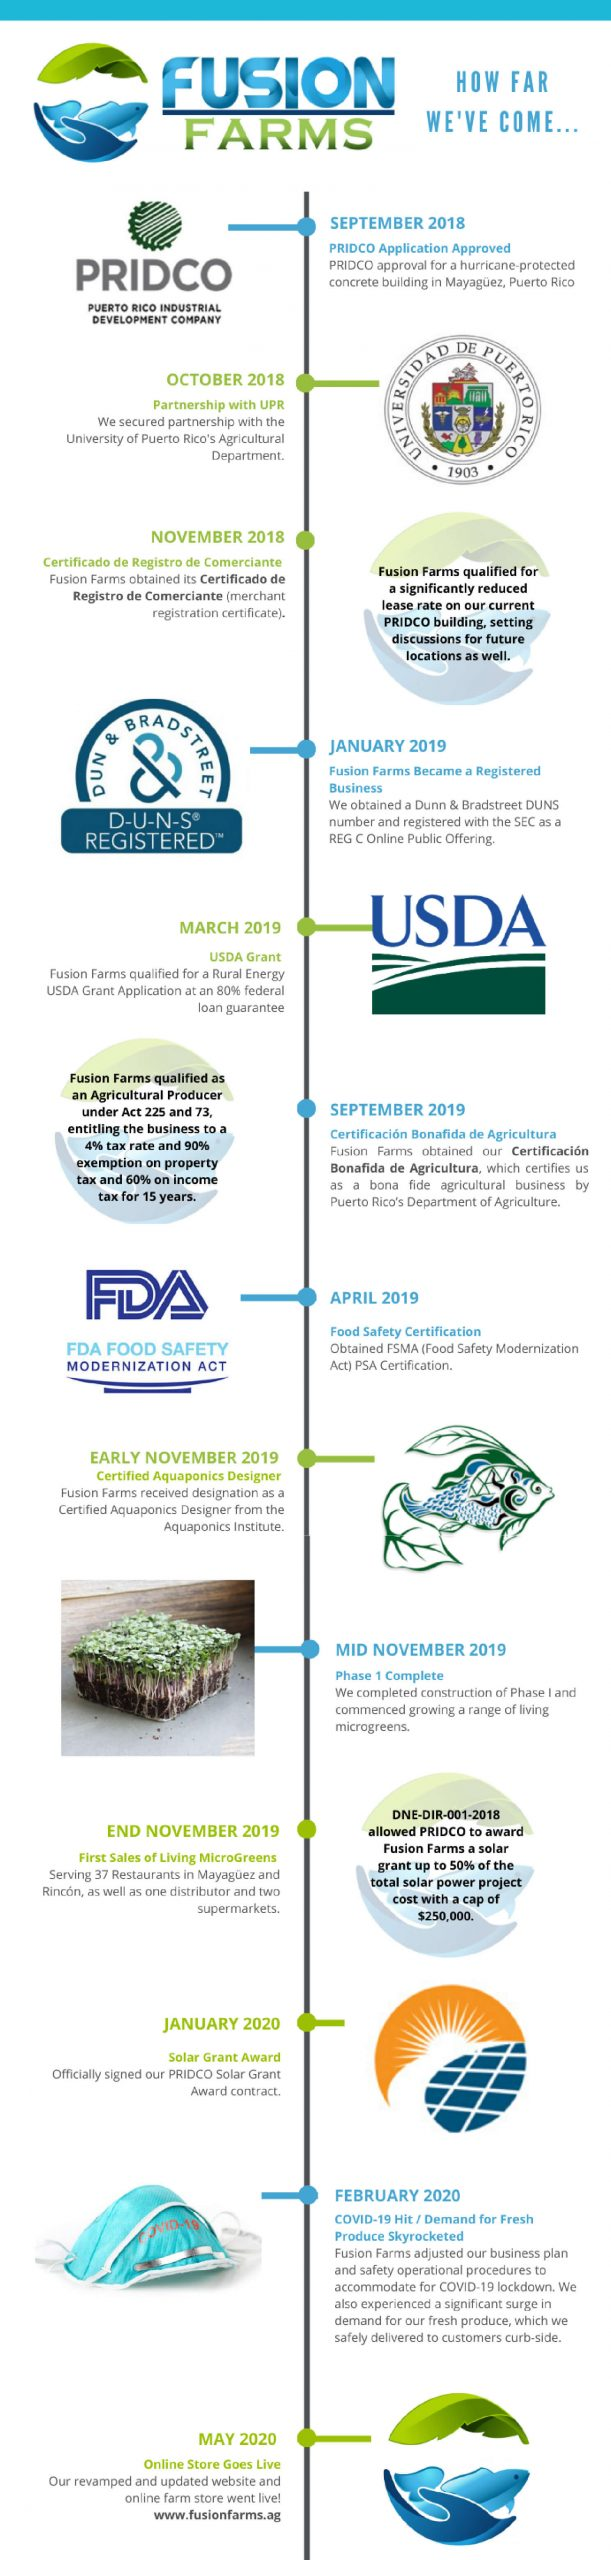 Fusion Farms Timeline Infographic cropped